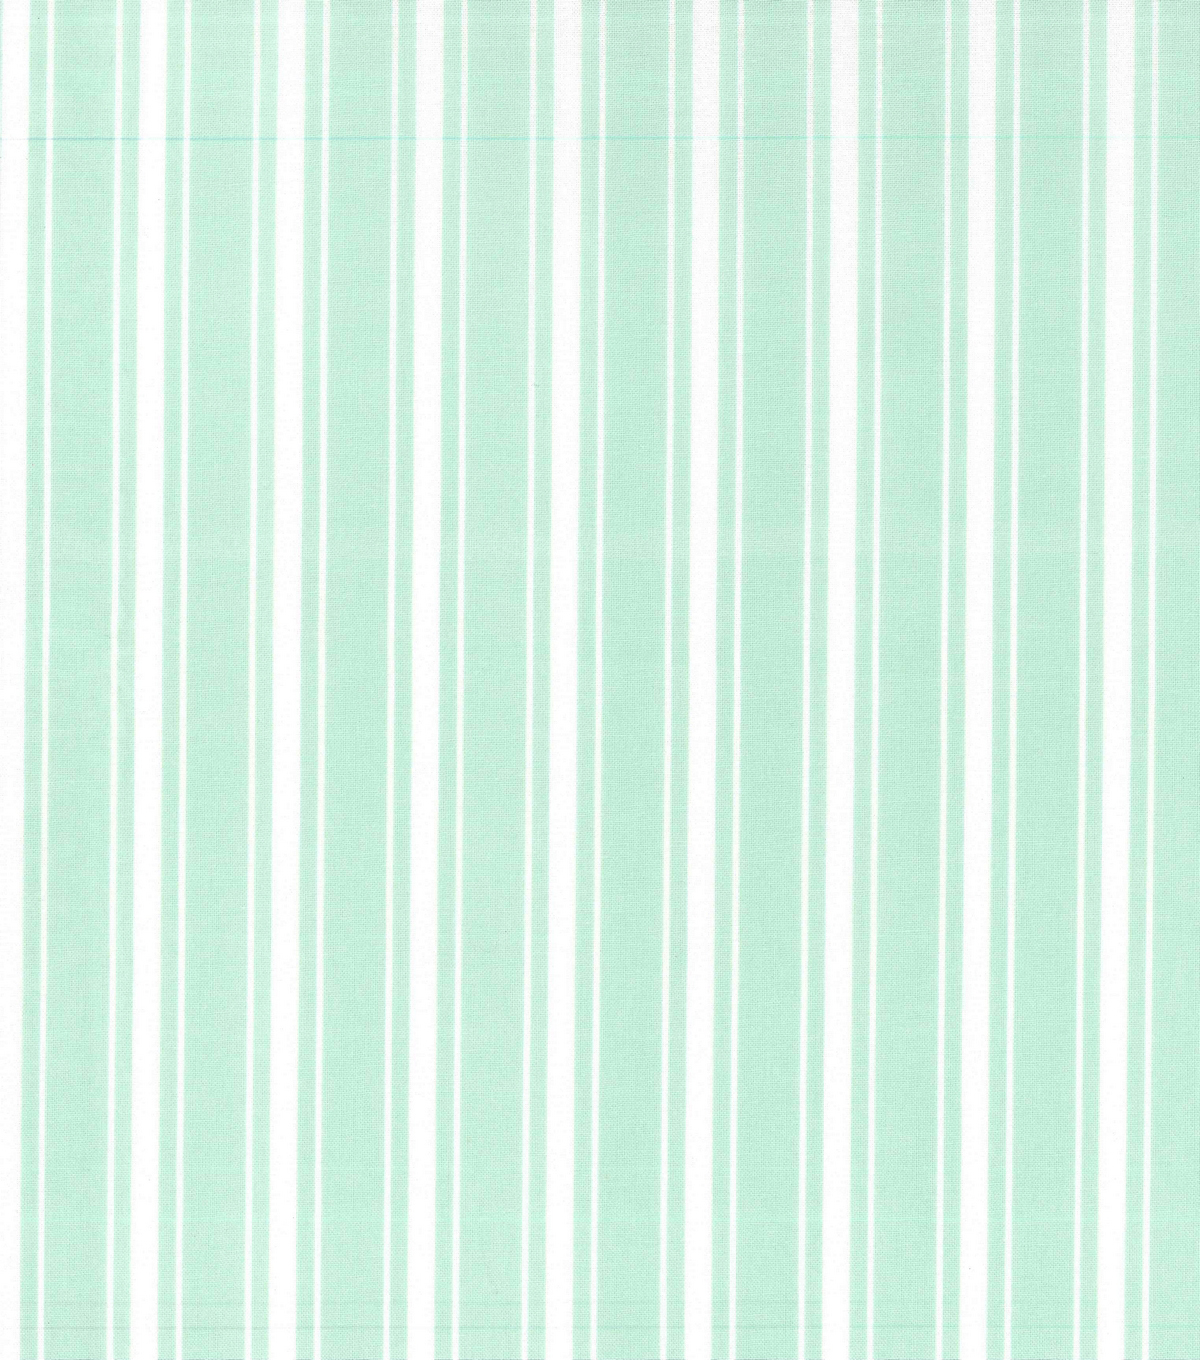 Nursery Cotton Fabric -Mint Stripe